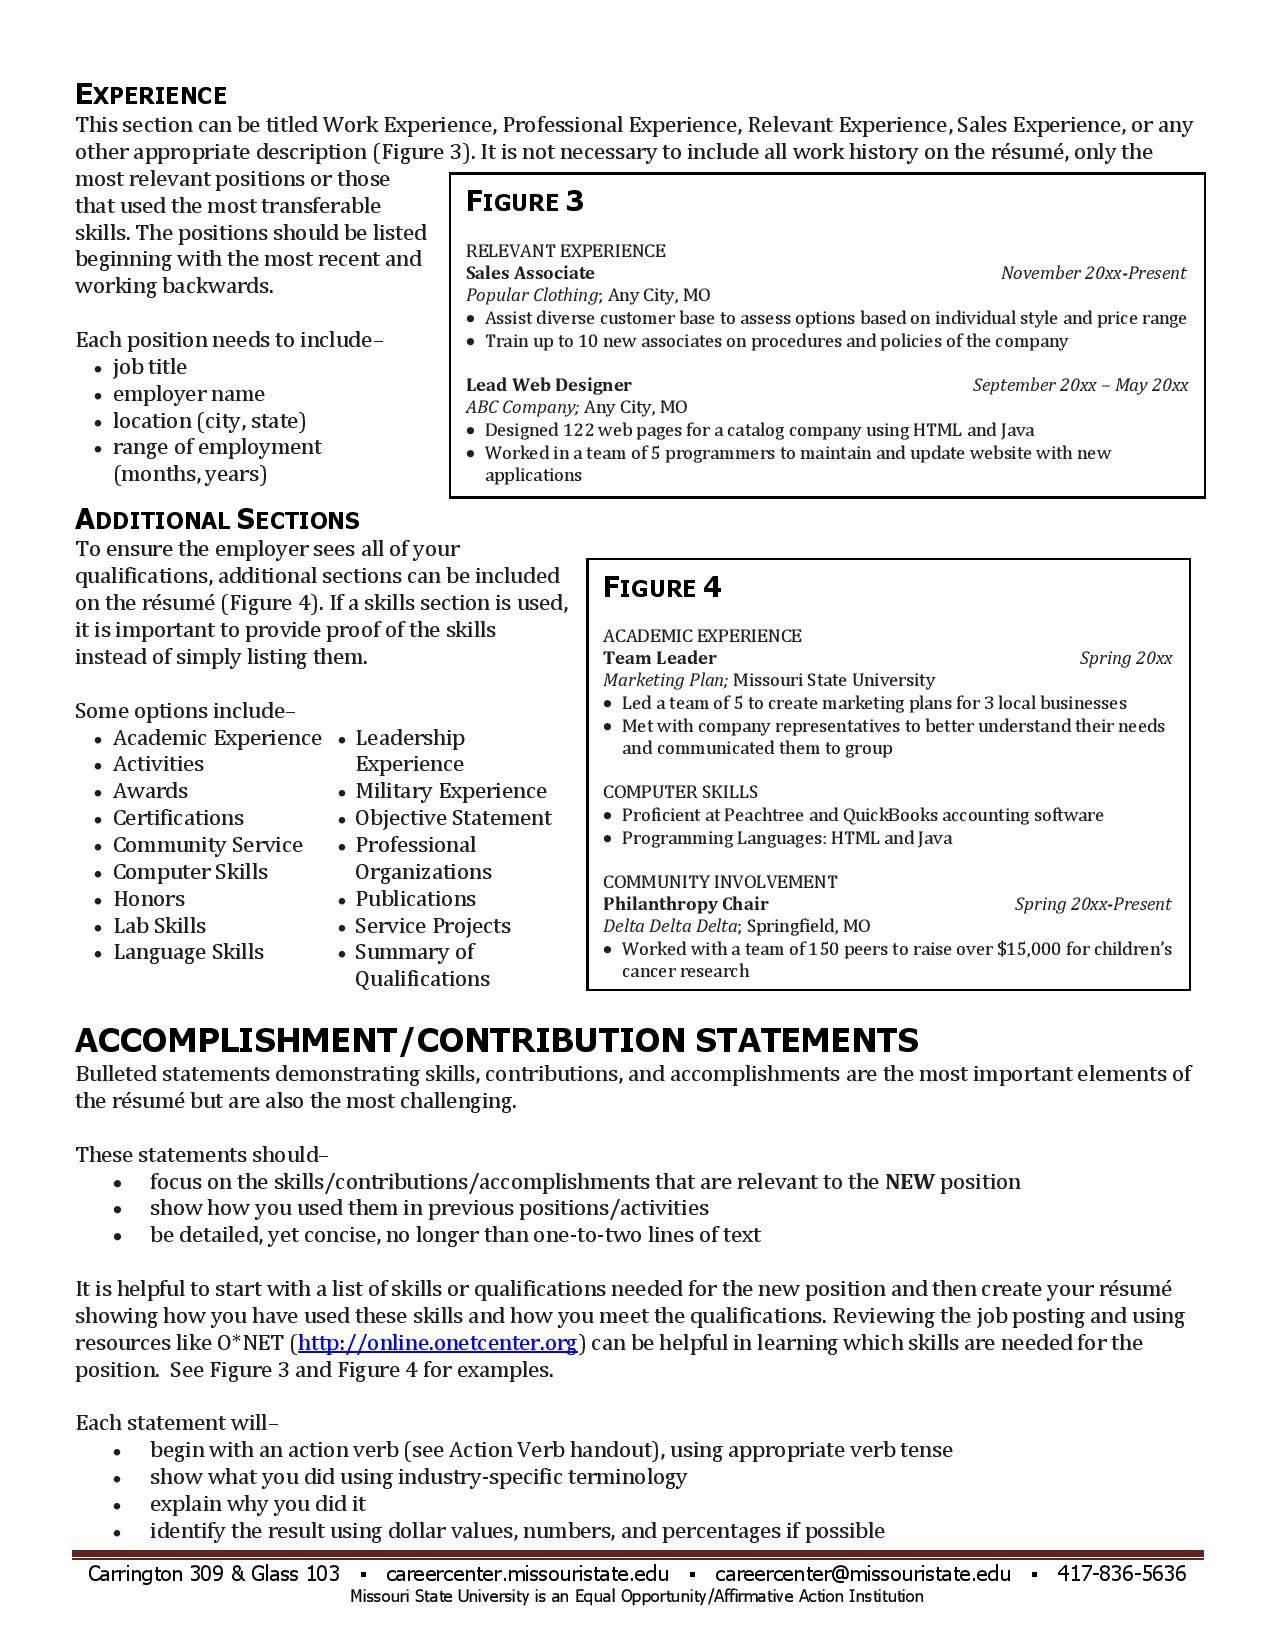 List Of Computer Skills For Resume Alluring Page 3 Resume Tips  Resumescover Letters  Pinterest  Resume .